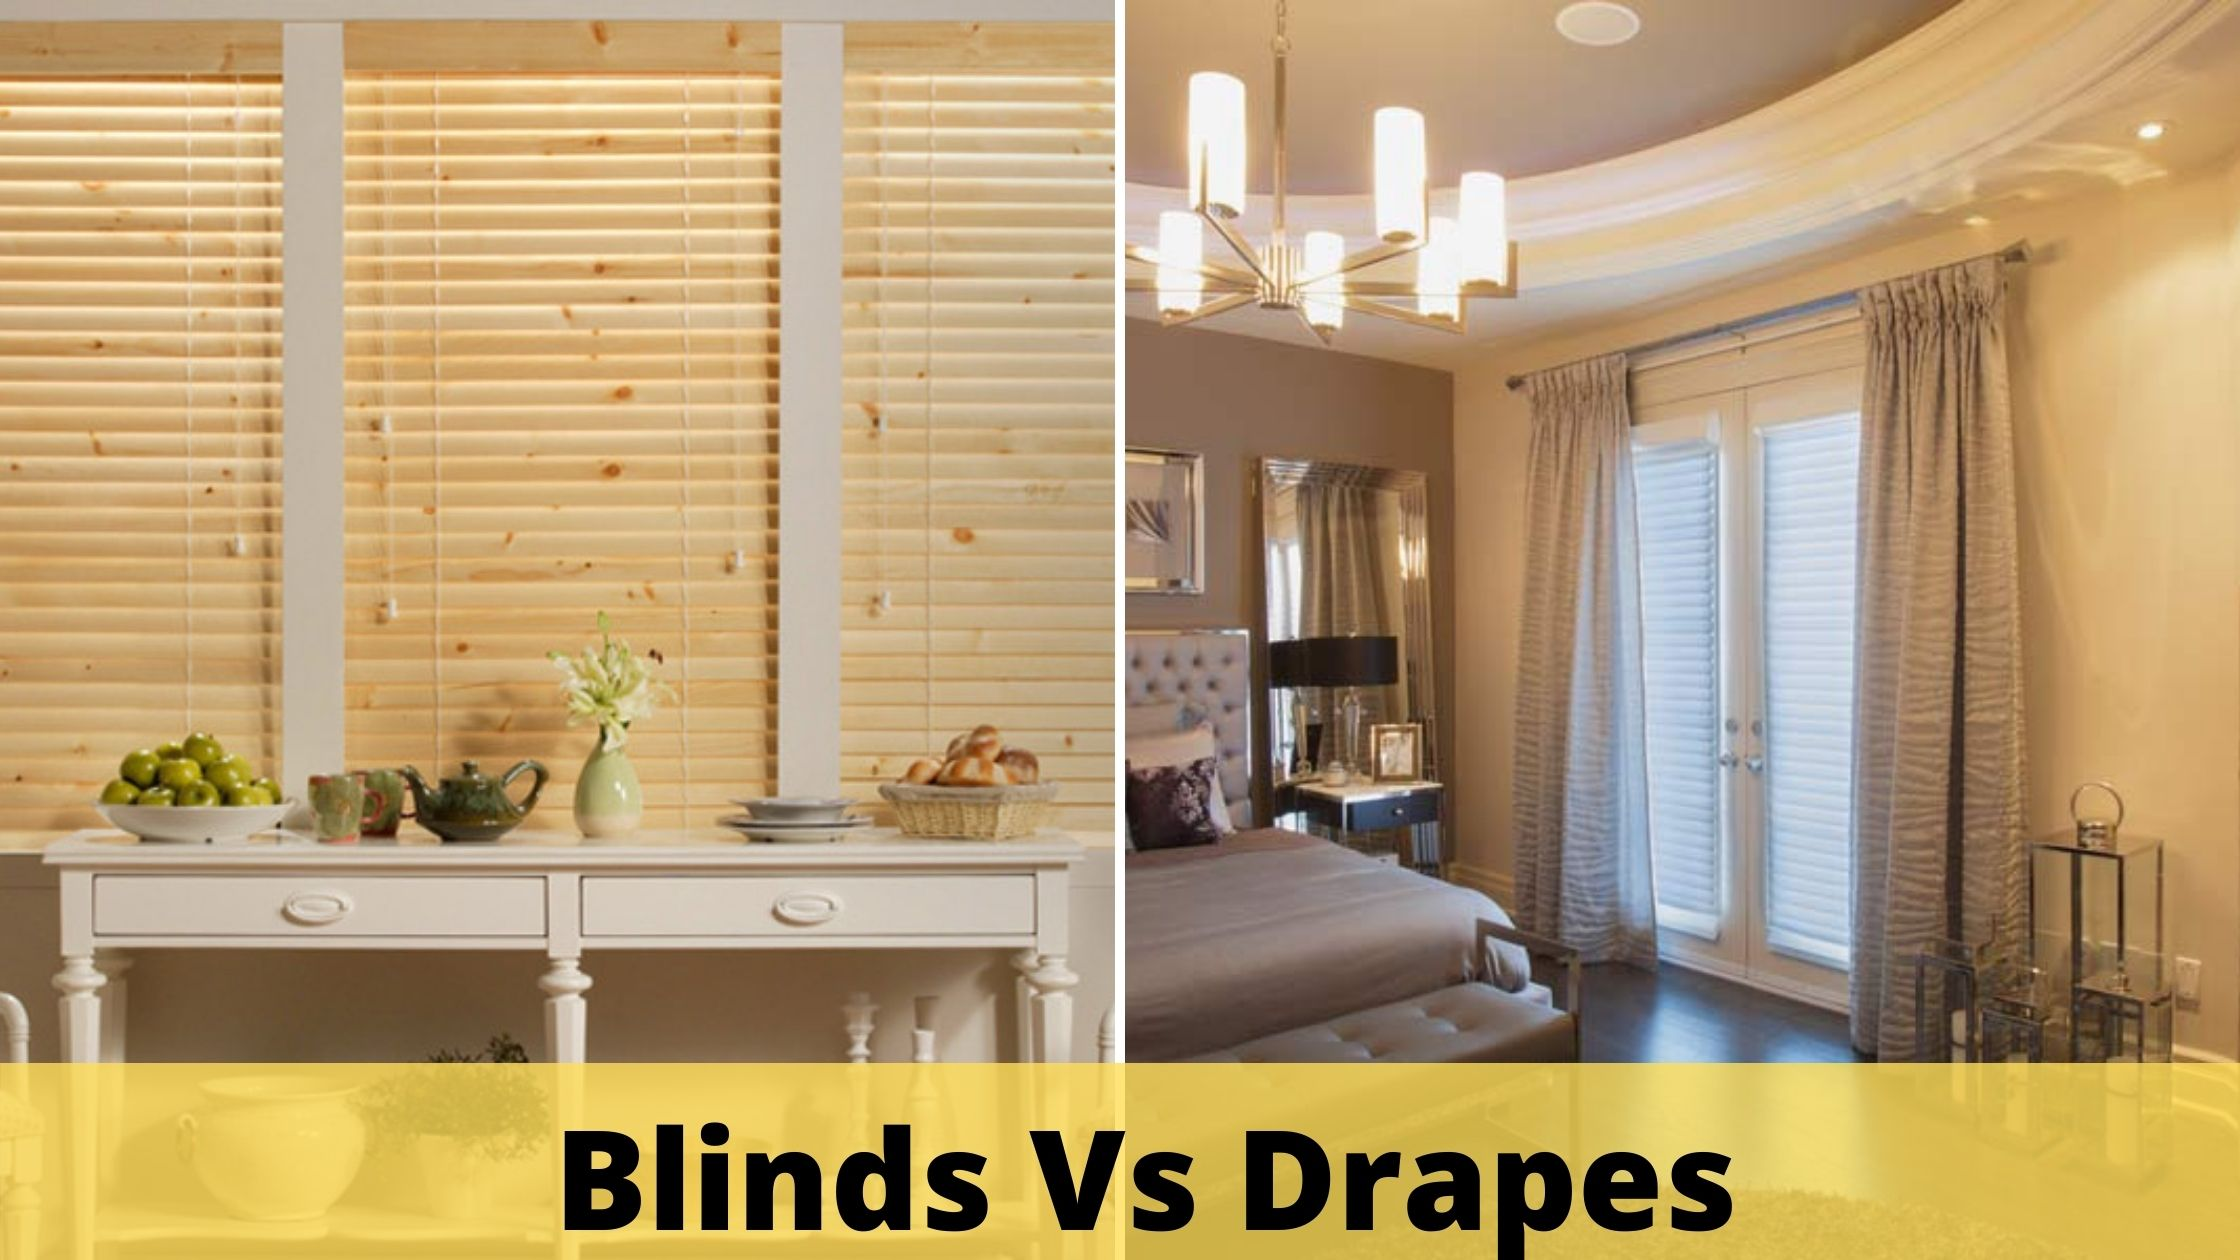 Blinds Vs Drapes